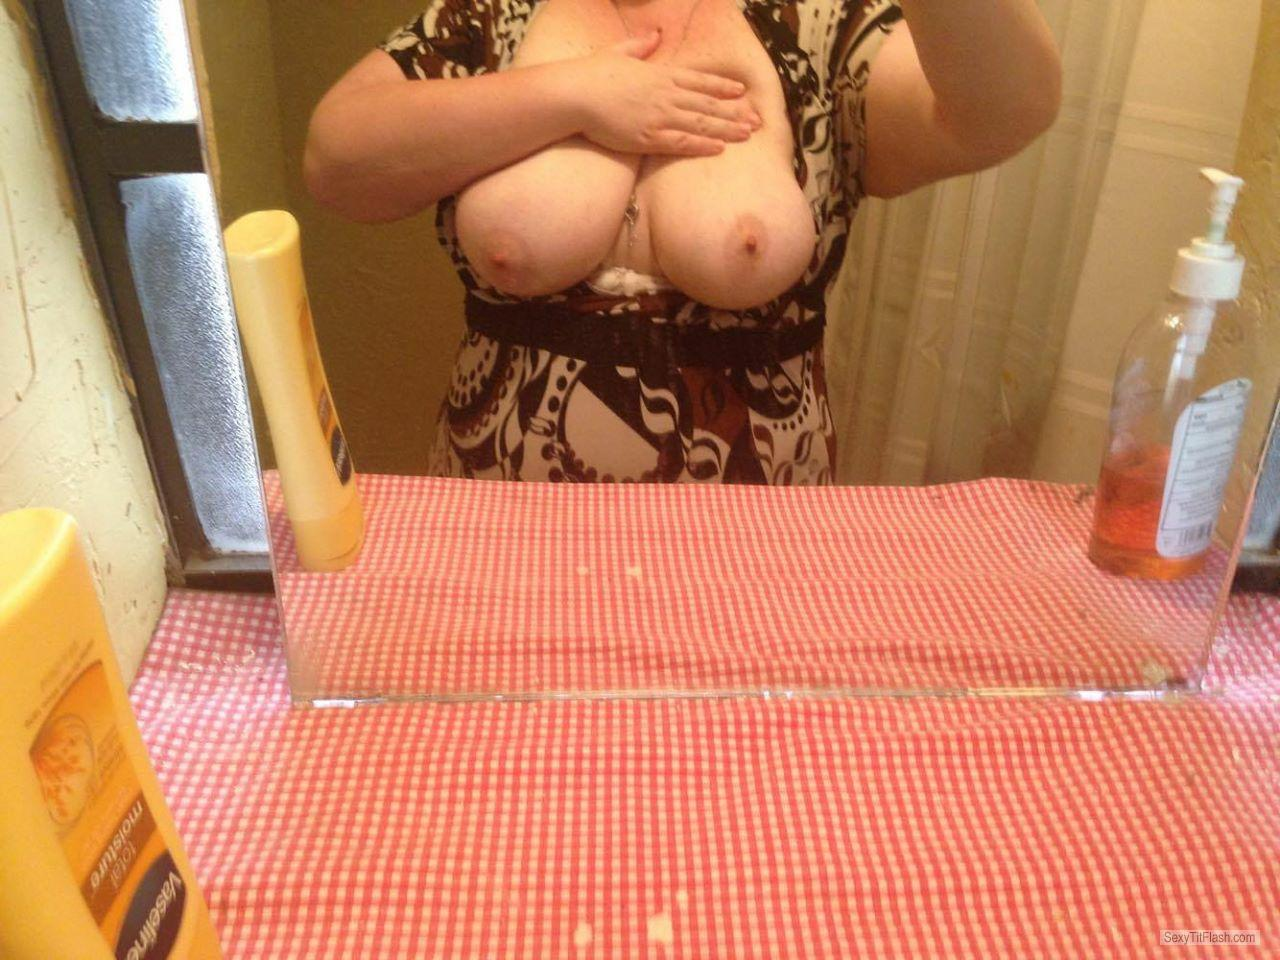 Tit Flash: My Friend's Big Tits (Selfie) - Woodshop from United States